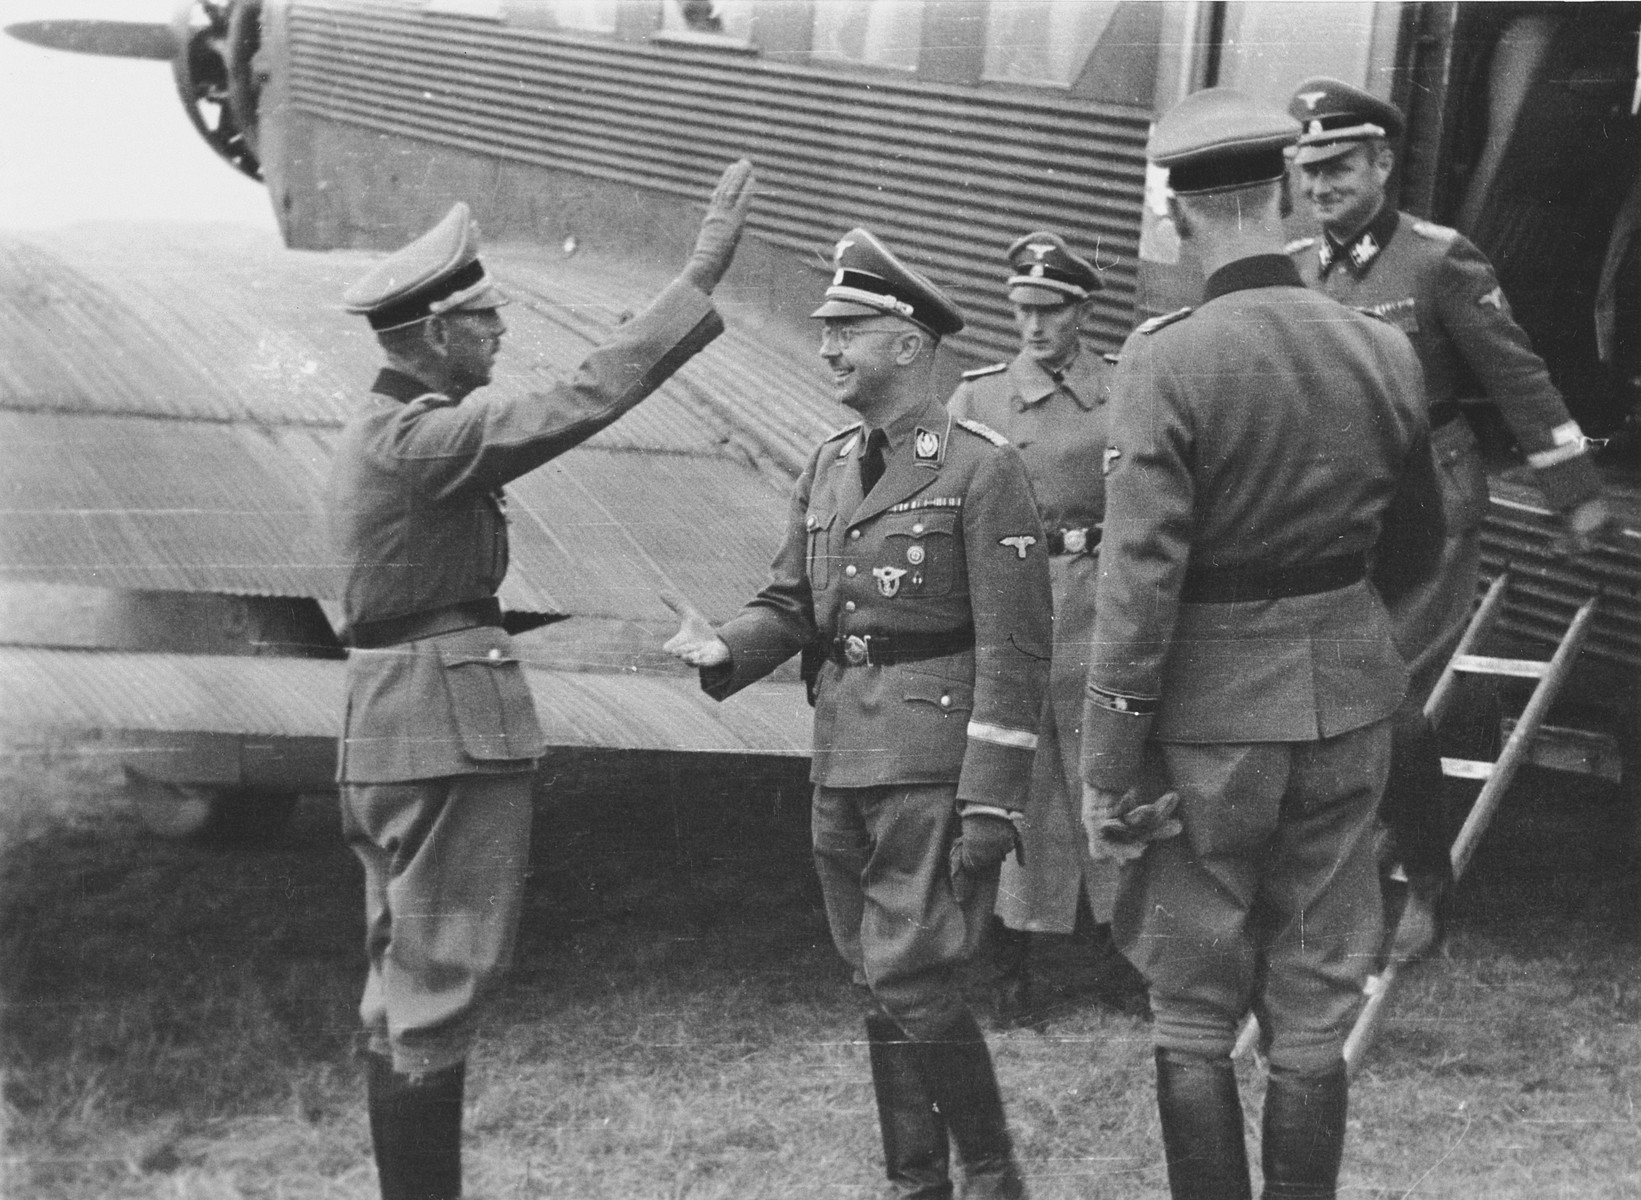 "Heinrich Himmler arrives at the airport on a visit to the volunteer Prinz Eugen division. Karl Wolff can be seen stepping off the plane.   The original Waffen-SS caption reads ""Der Reichsfuehrer SS Heinrich Himmler bei der Ankunft auf einem Feldflughafen zur Besichtigung der SS Freiwilligen-Division"" (The Reichsfueher SS Heinrich Himmler arrives at the field airport on his visit to the SS volunteer division)."